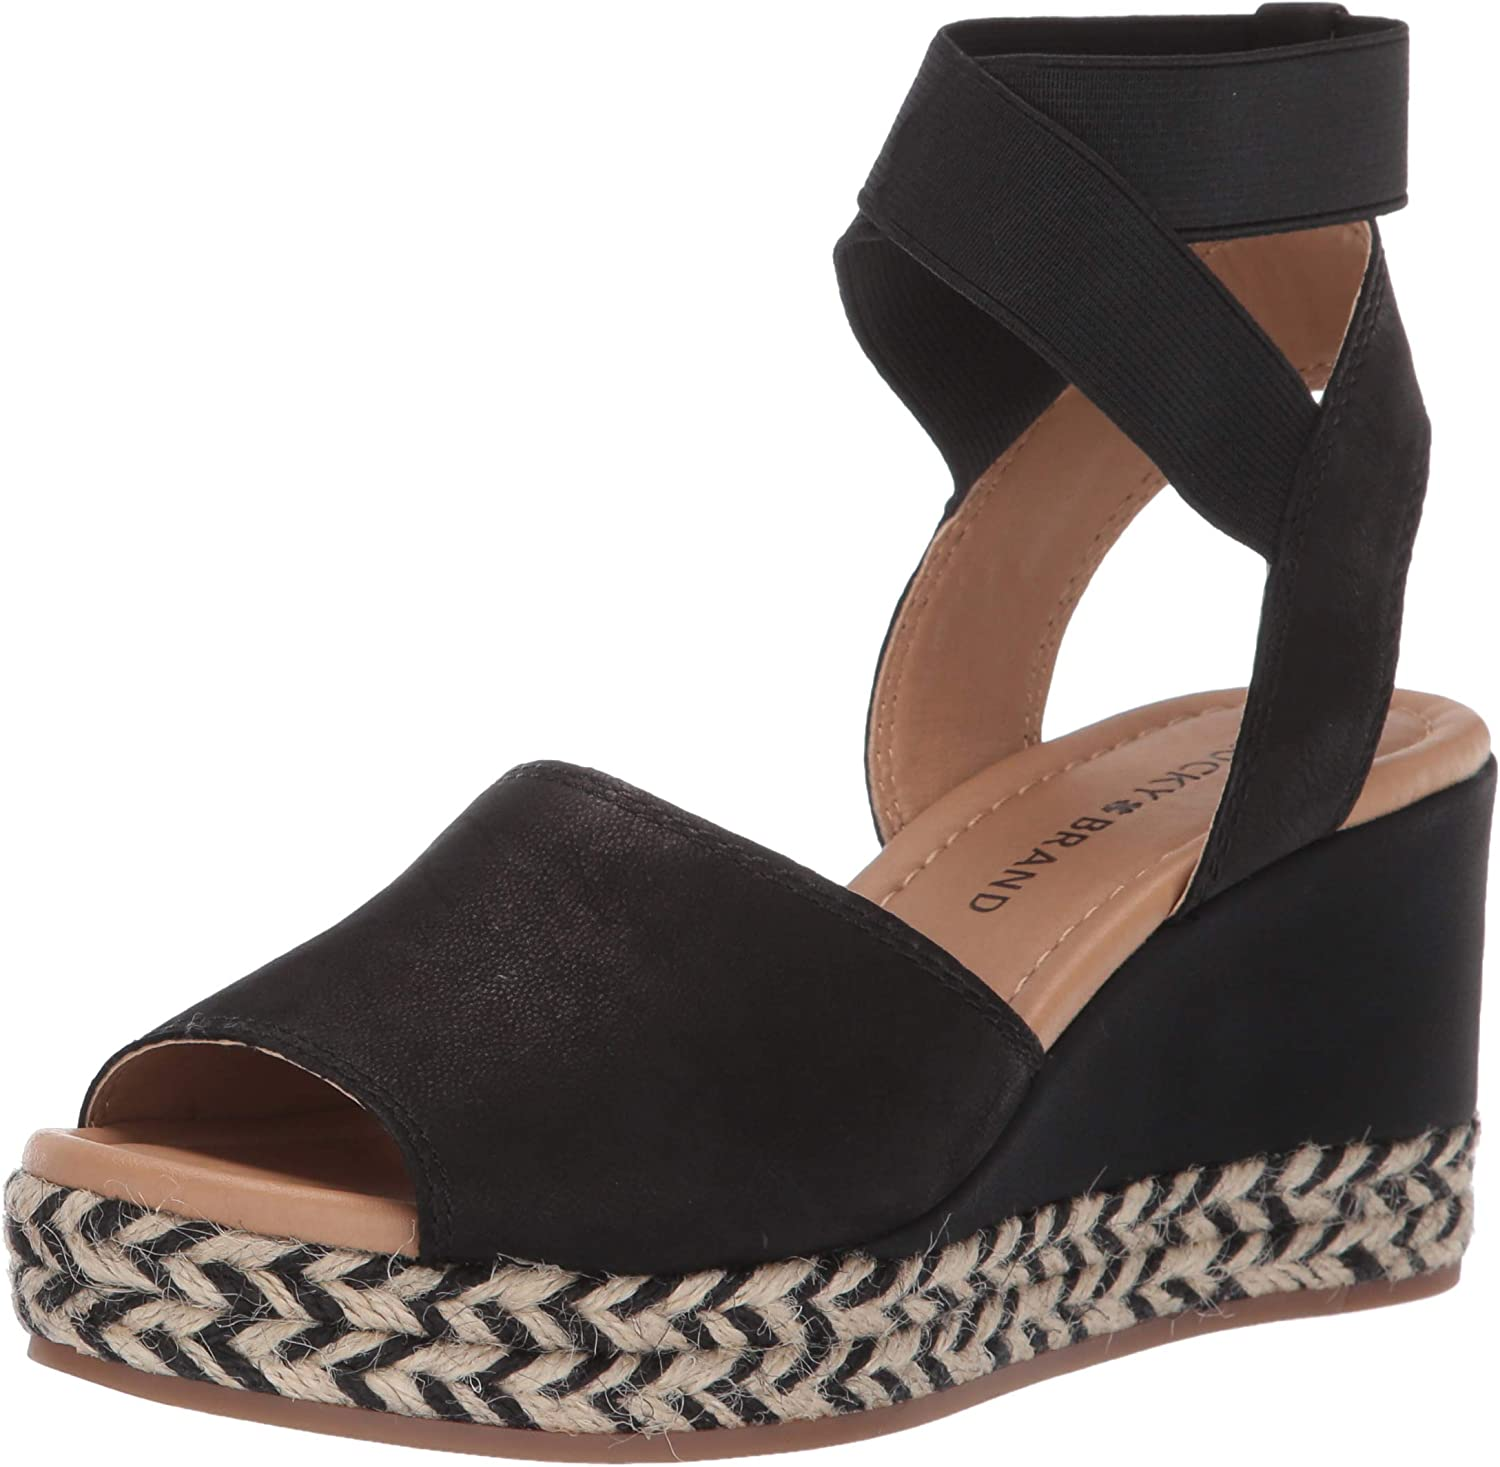 Lucky Brand Womens Bettanie Wedge Espadrille Wedge Sandal